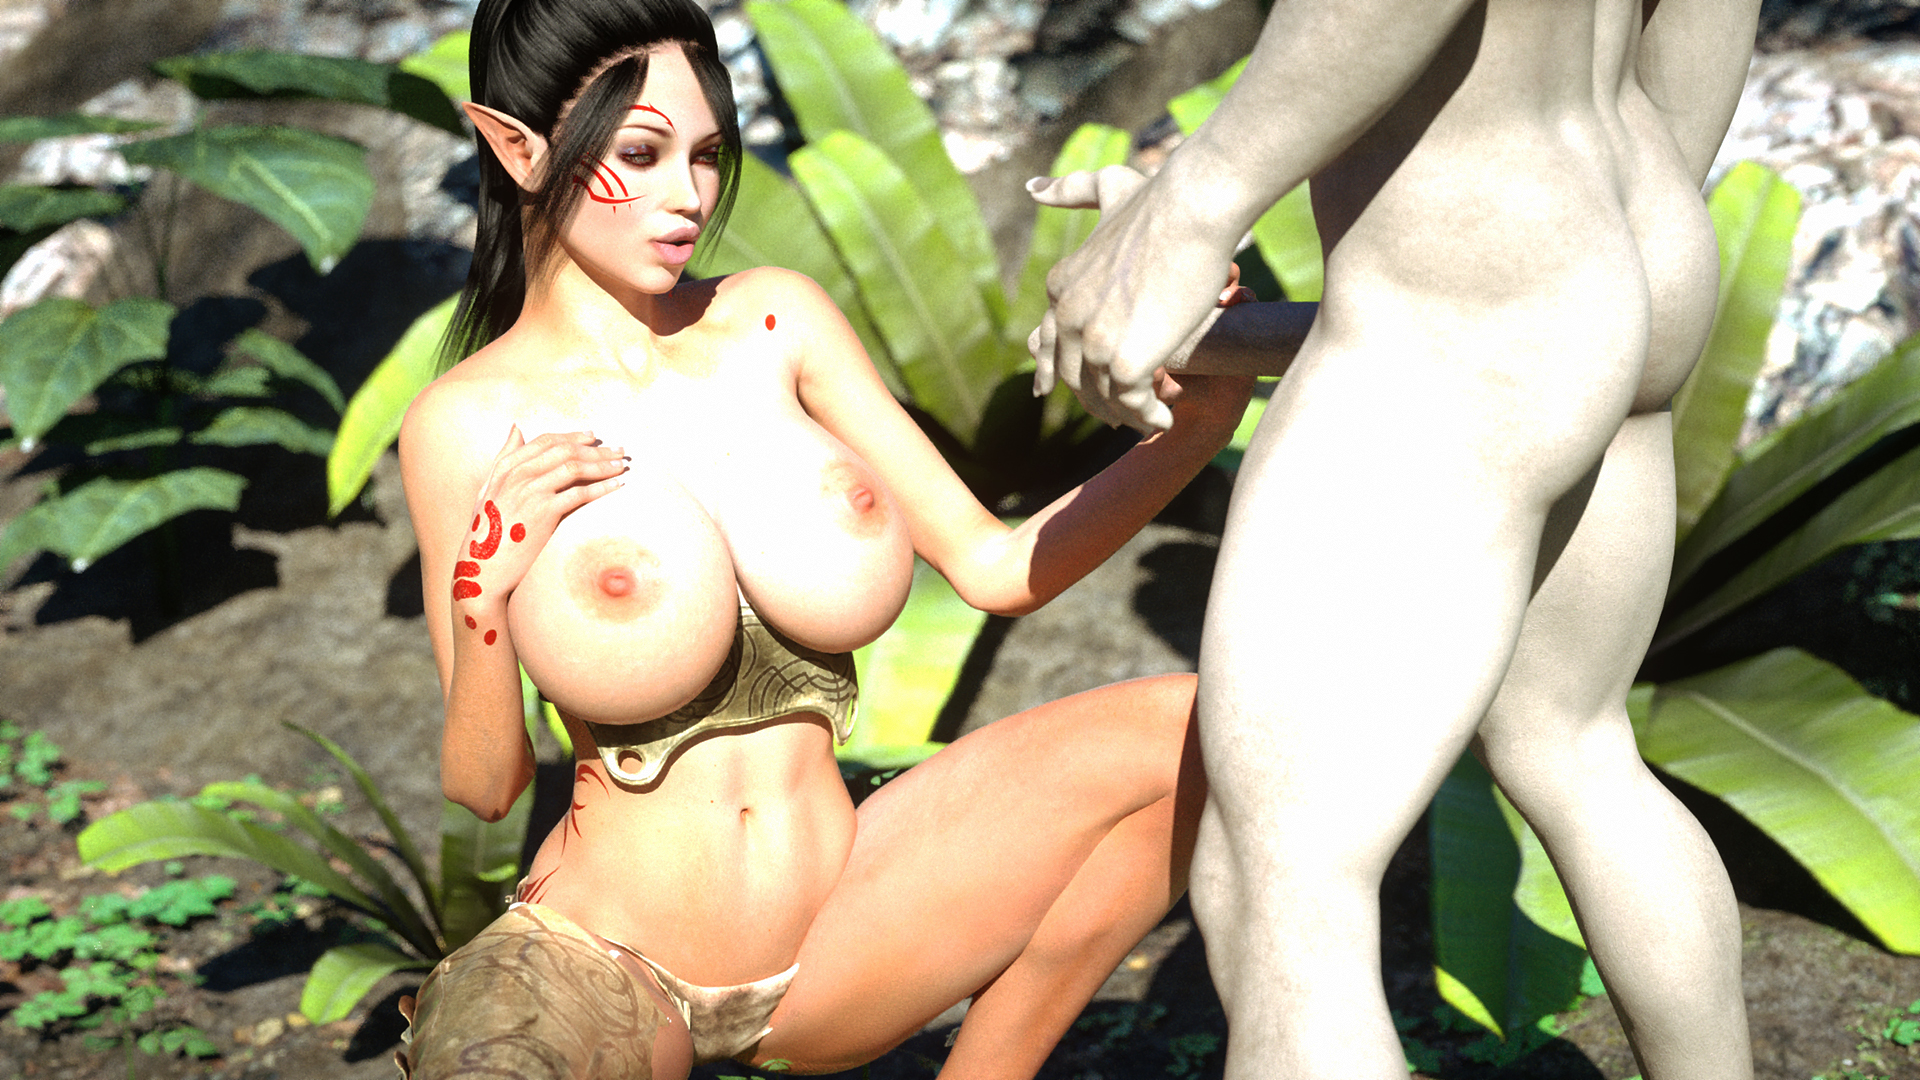 Elf in forest porn sexual pictures